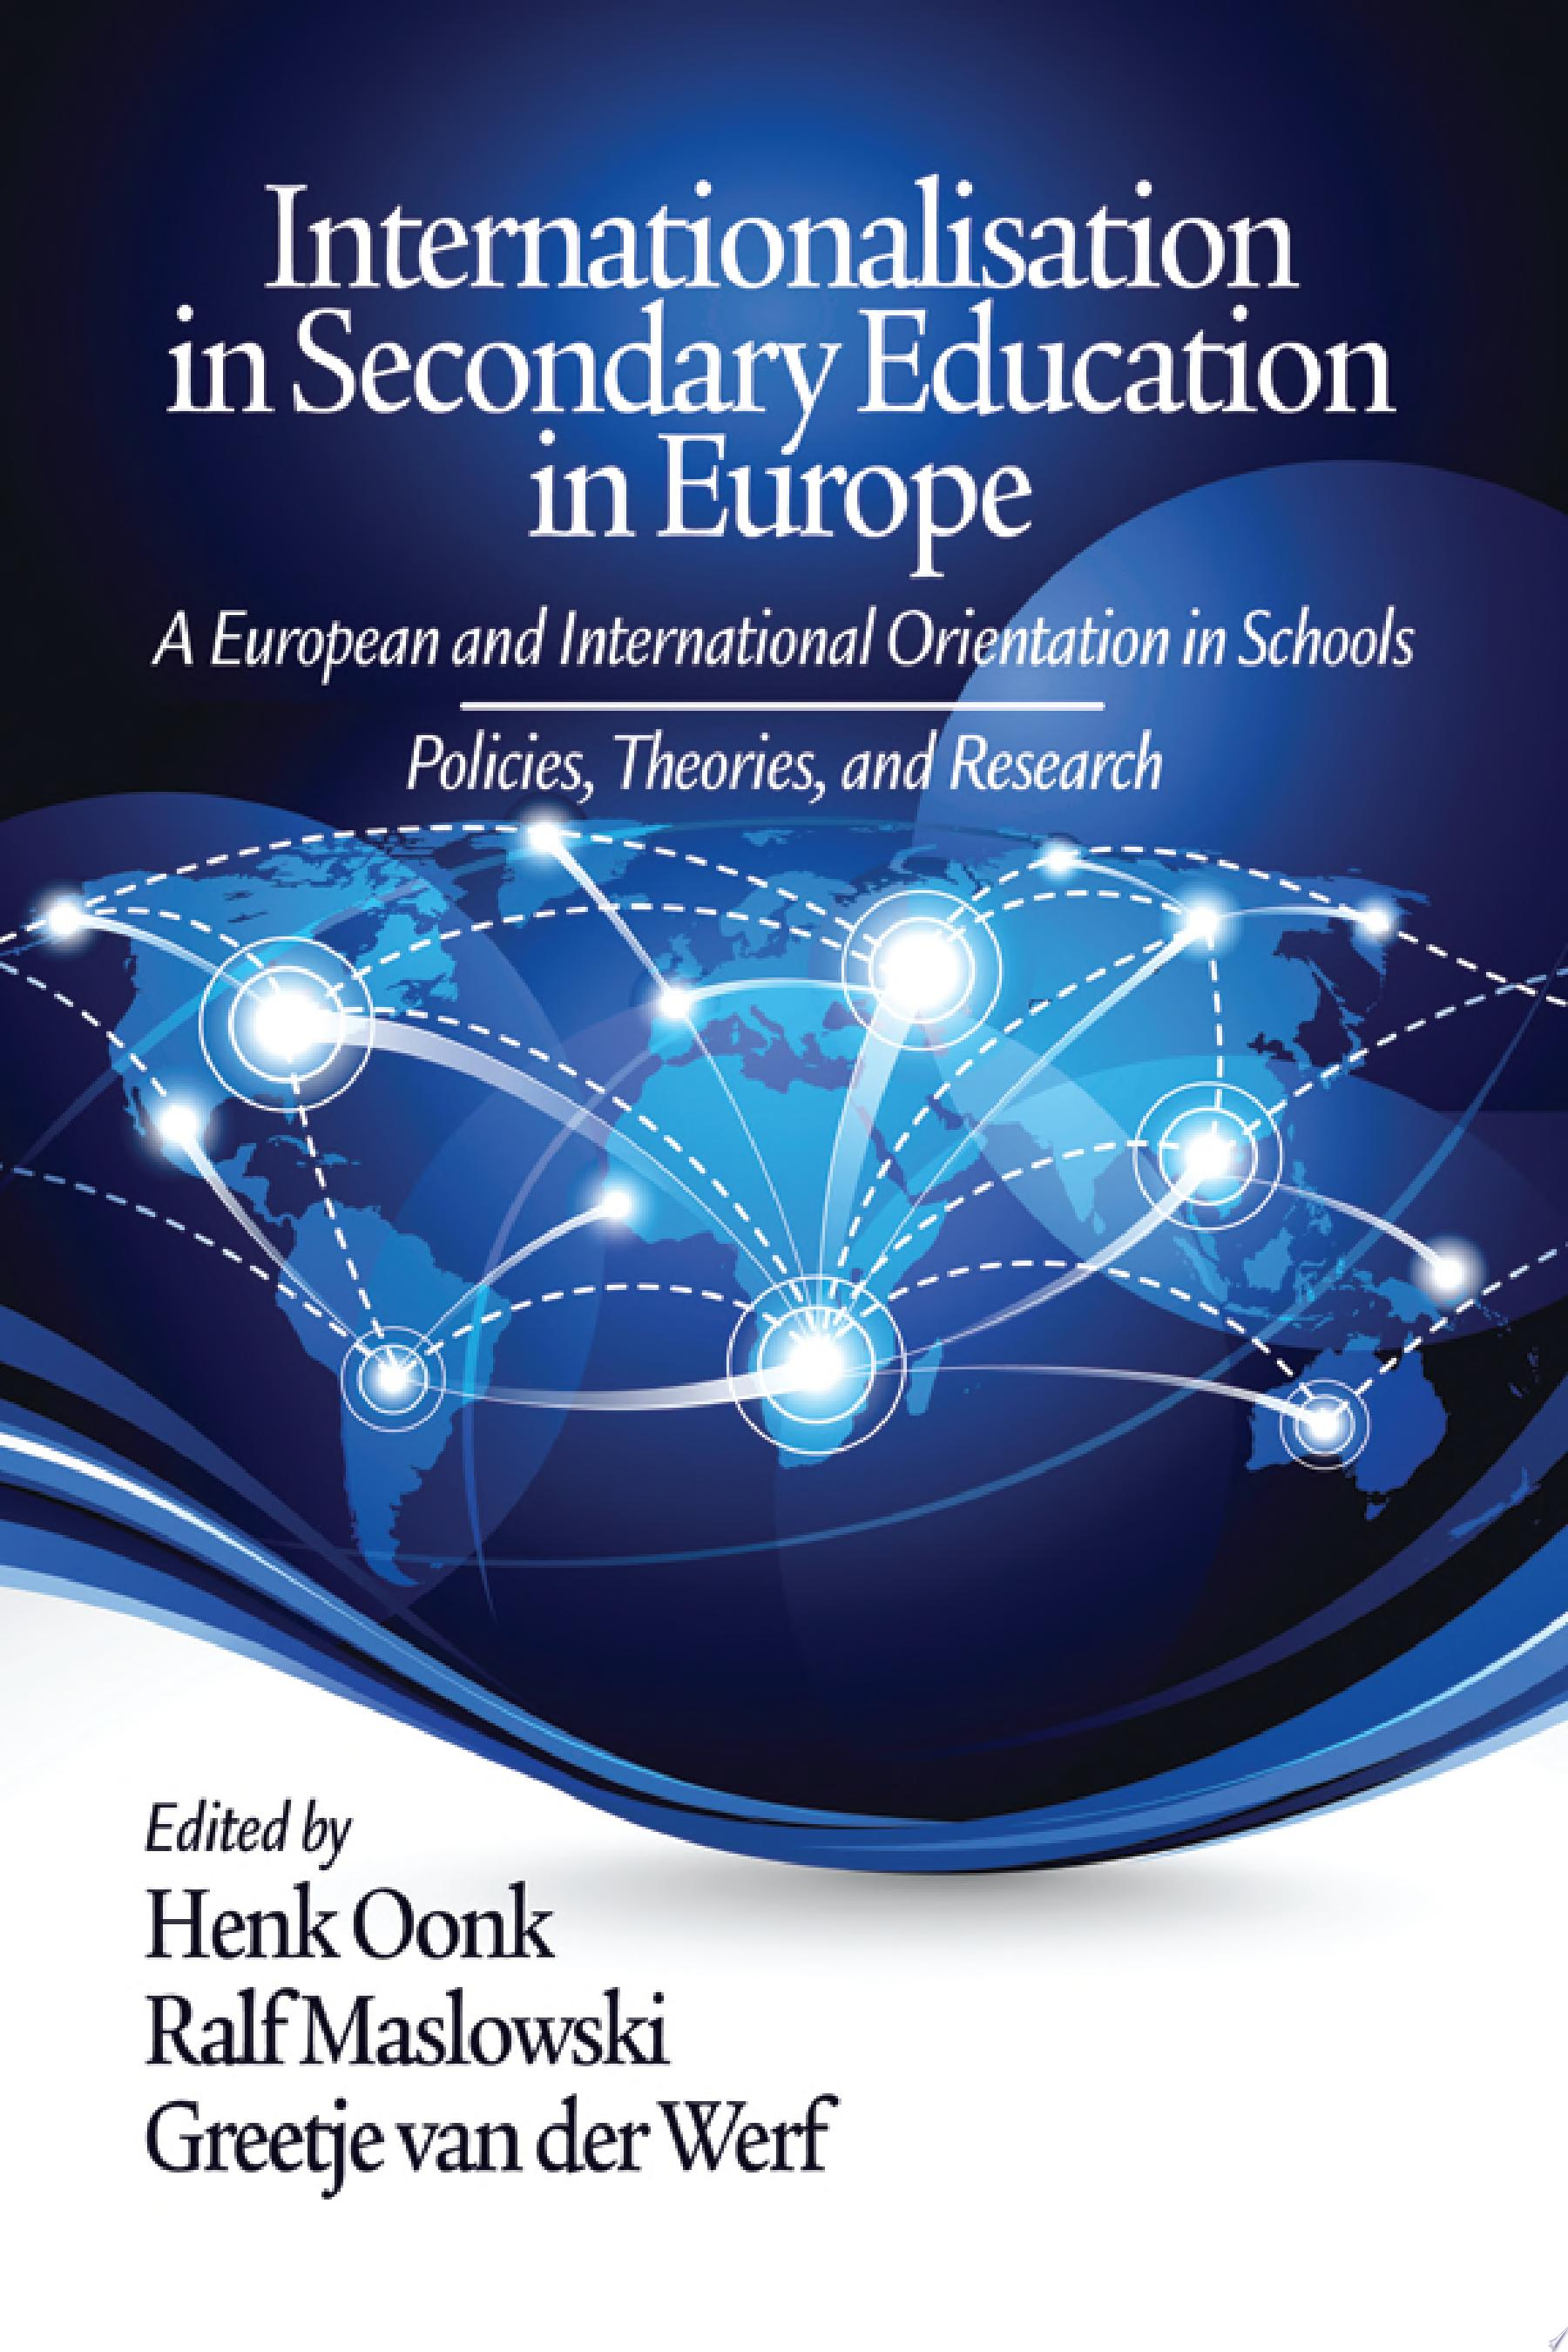 Internationalisation in Secondary Education in Europe